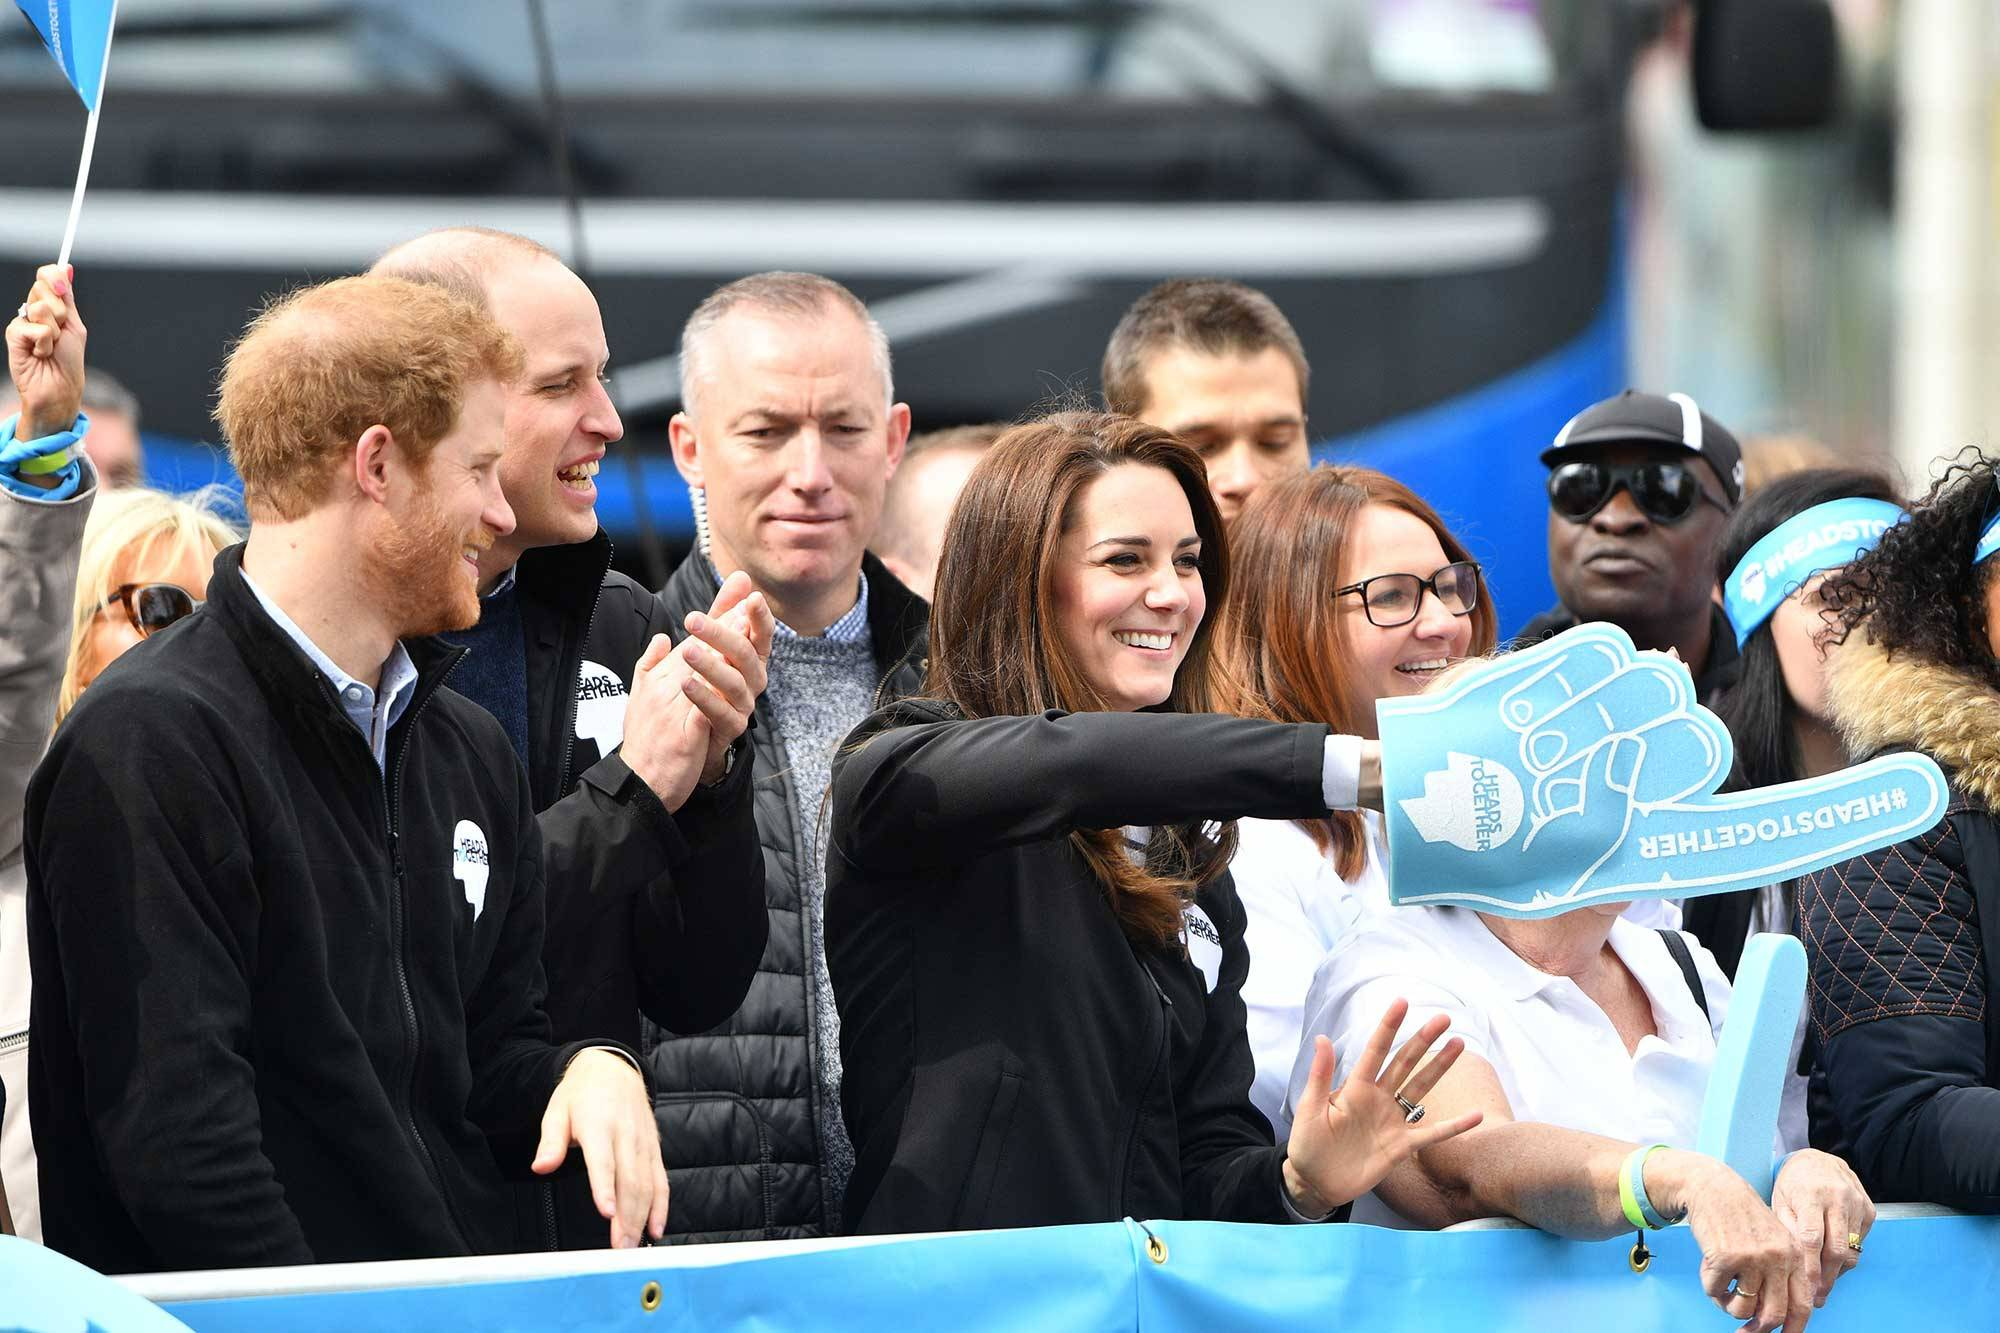 Harry and Kate took turns waving a giant Heads Together foam hand with pointing finger as runners did a double-take when they recognized them Photo (C) GETTY IMAGES